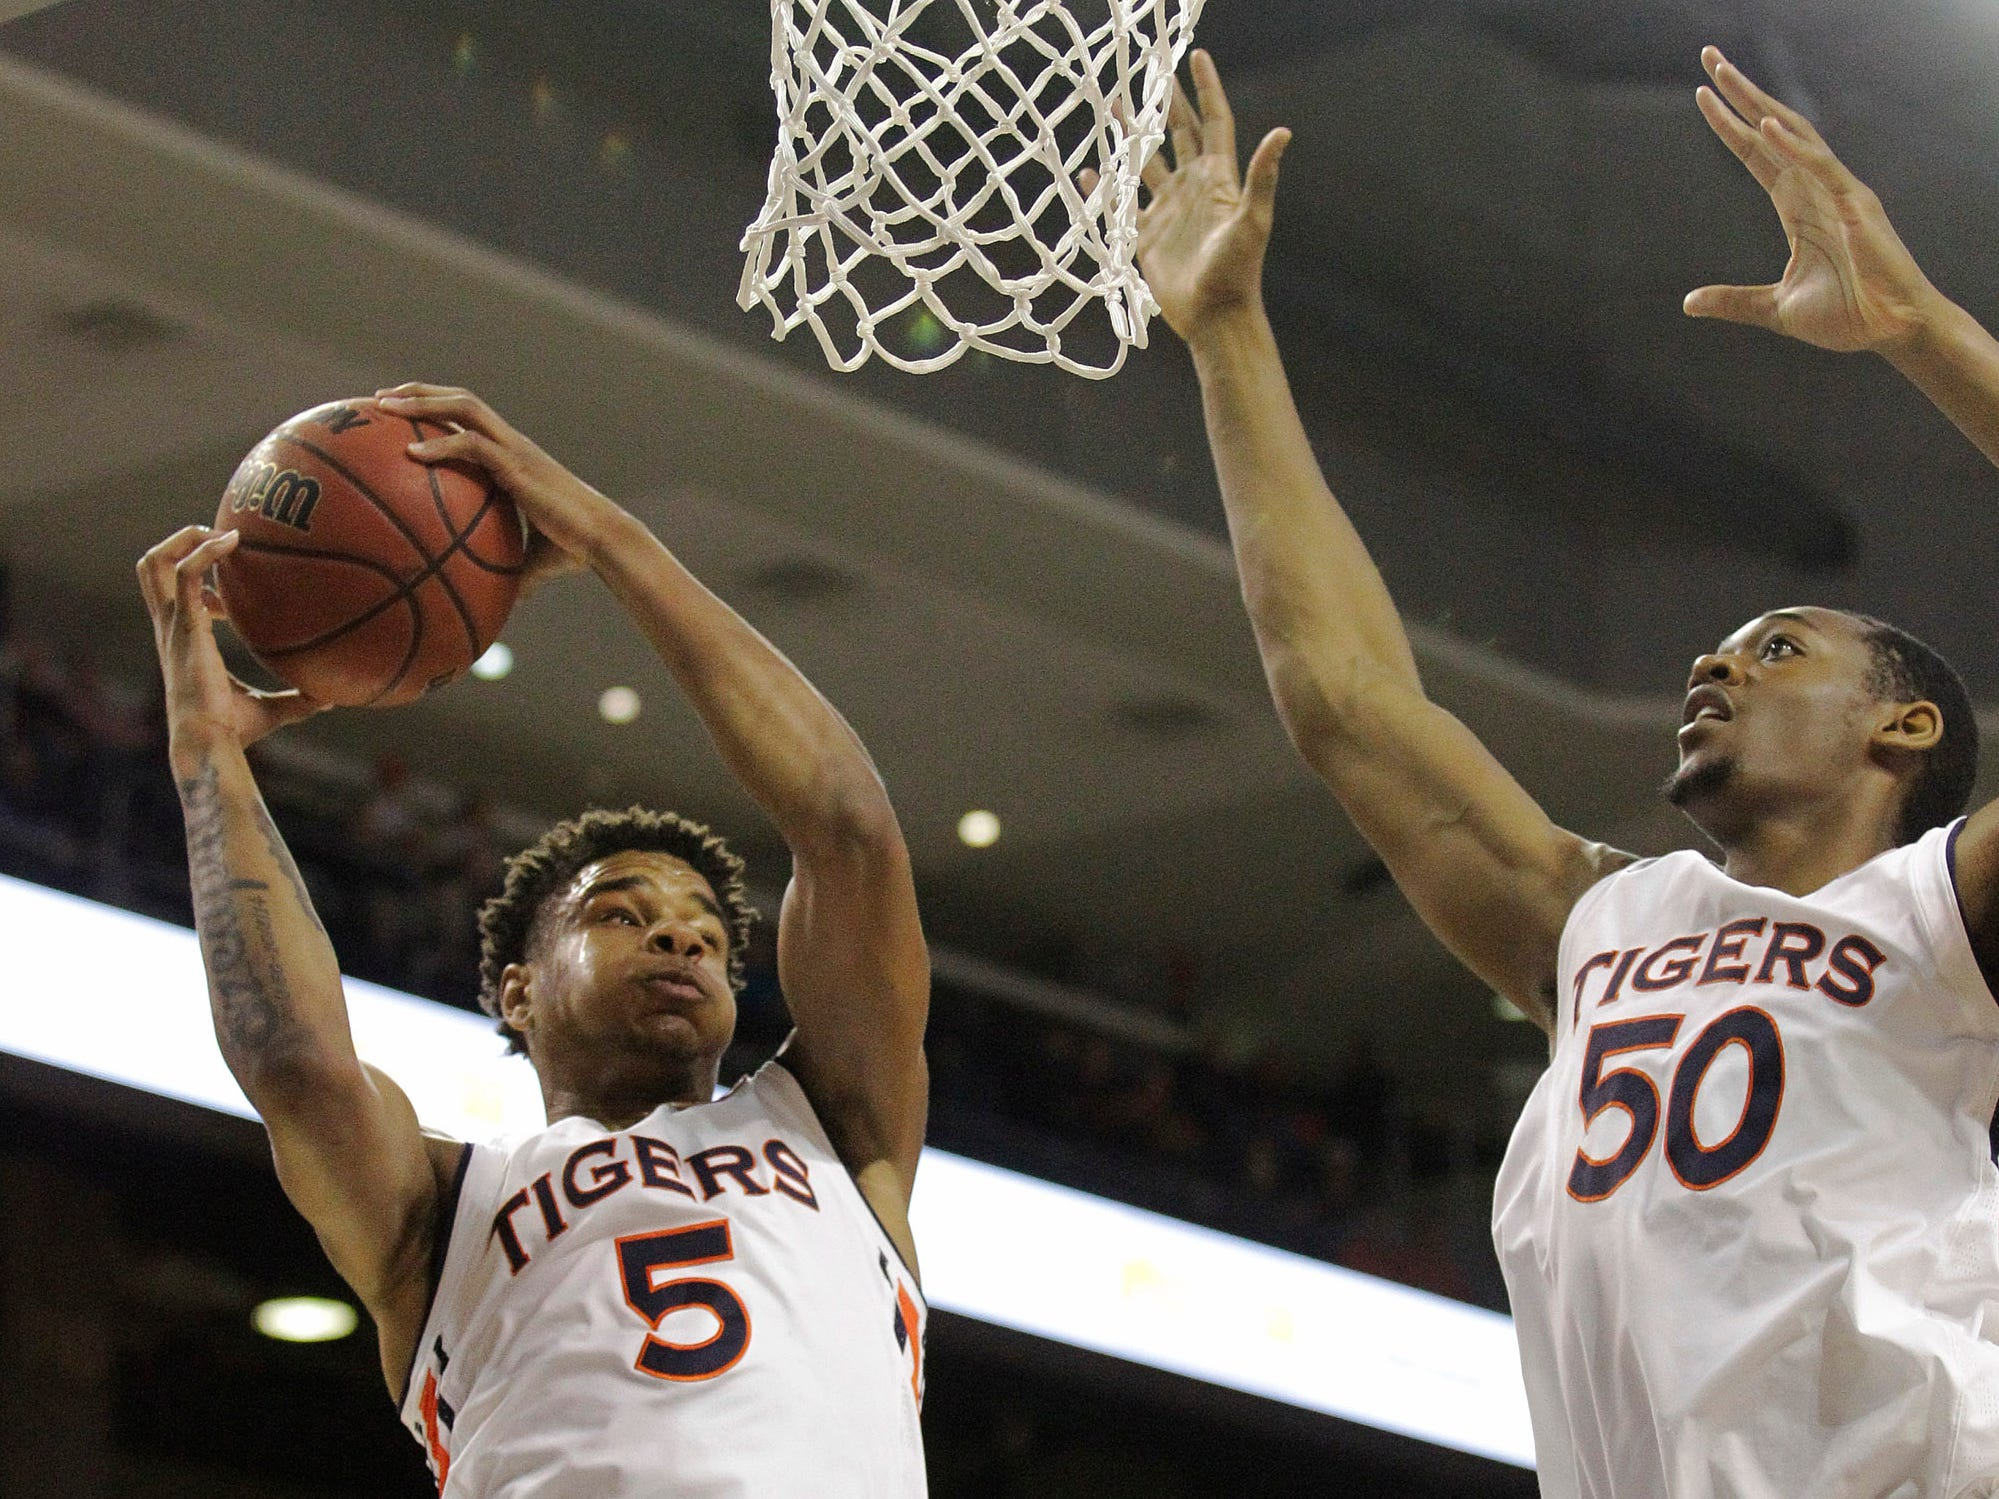 Dec 4, 2018; Auburn, AL, USA; Auburn Tigers forward Chuma Okeke (5) grabs a rebound from center Austin Wiley (50) during the first half against the UNC-Asheville Bulldogs at Auburn Arena. Mandatory Credit: John Reed-USA TODAY Sports